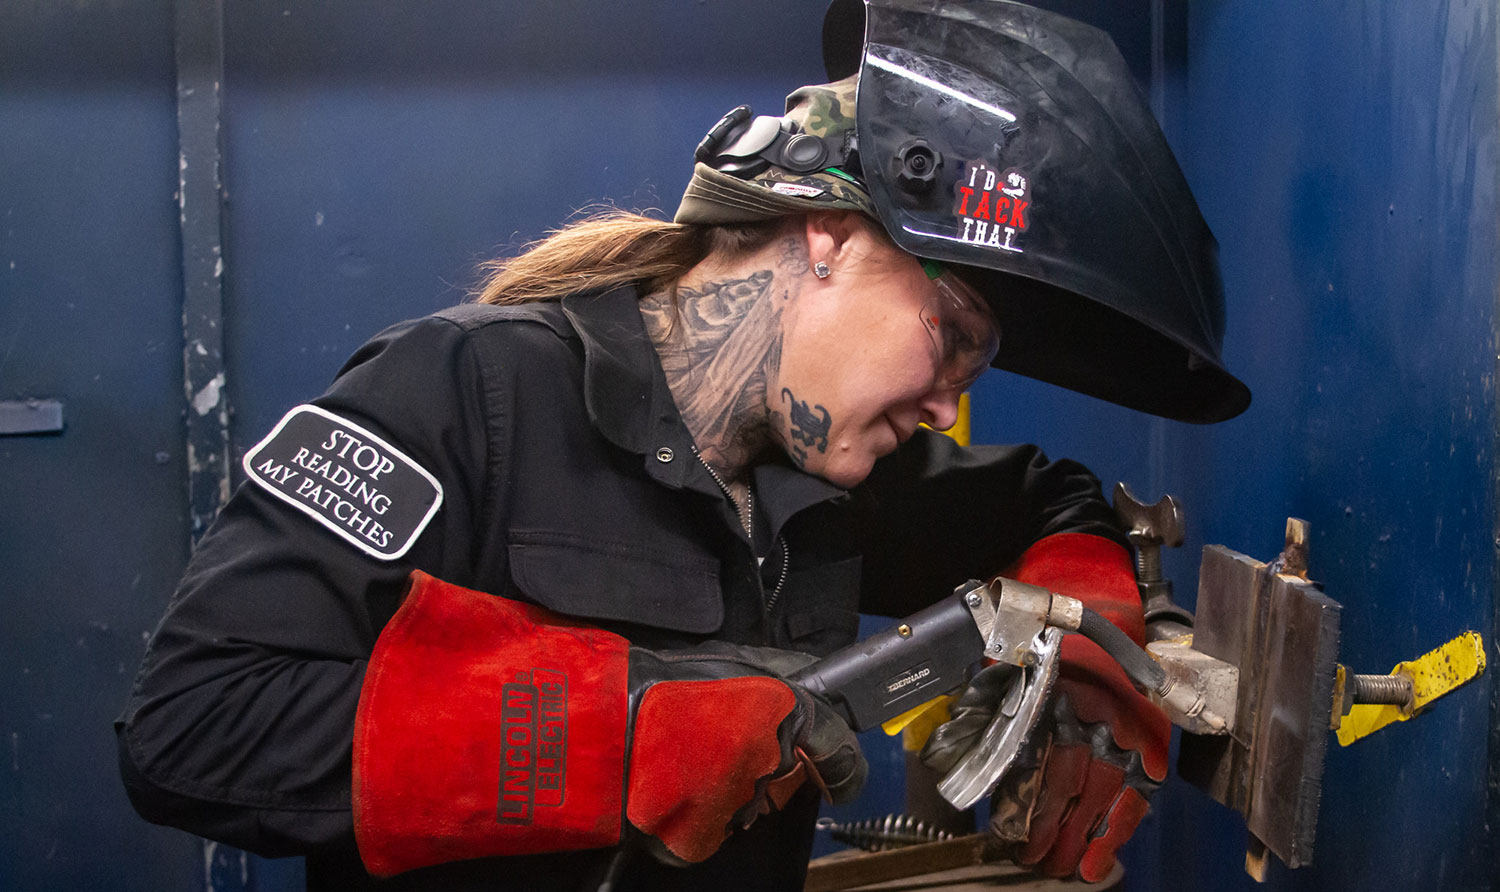 Sharla Knight completes welding project at San Diego Continuing Education